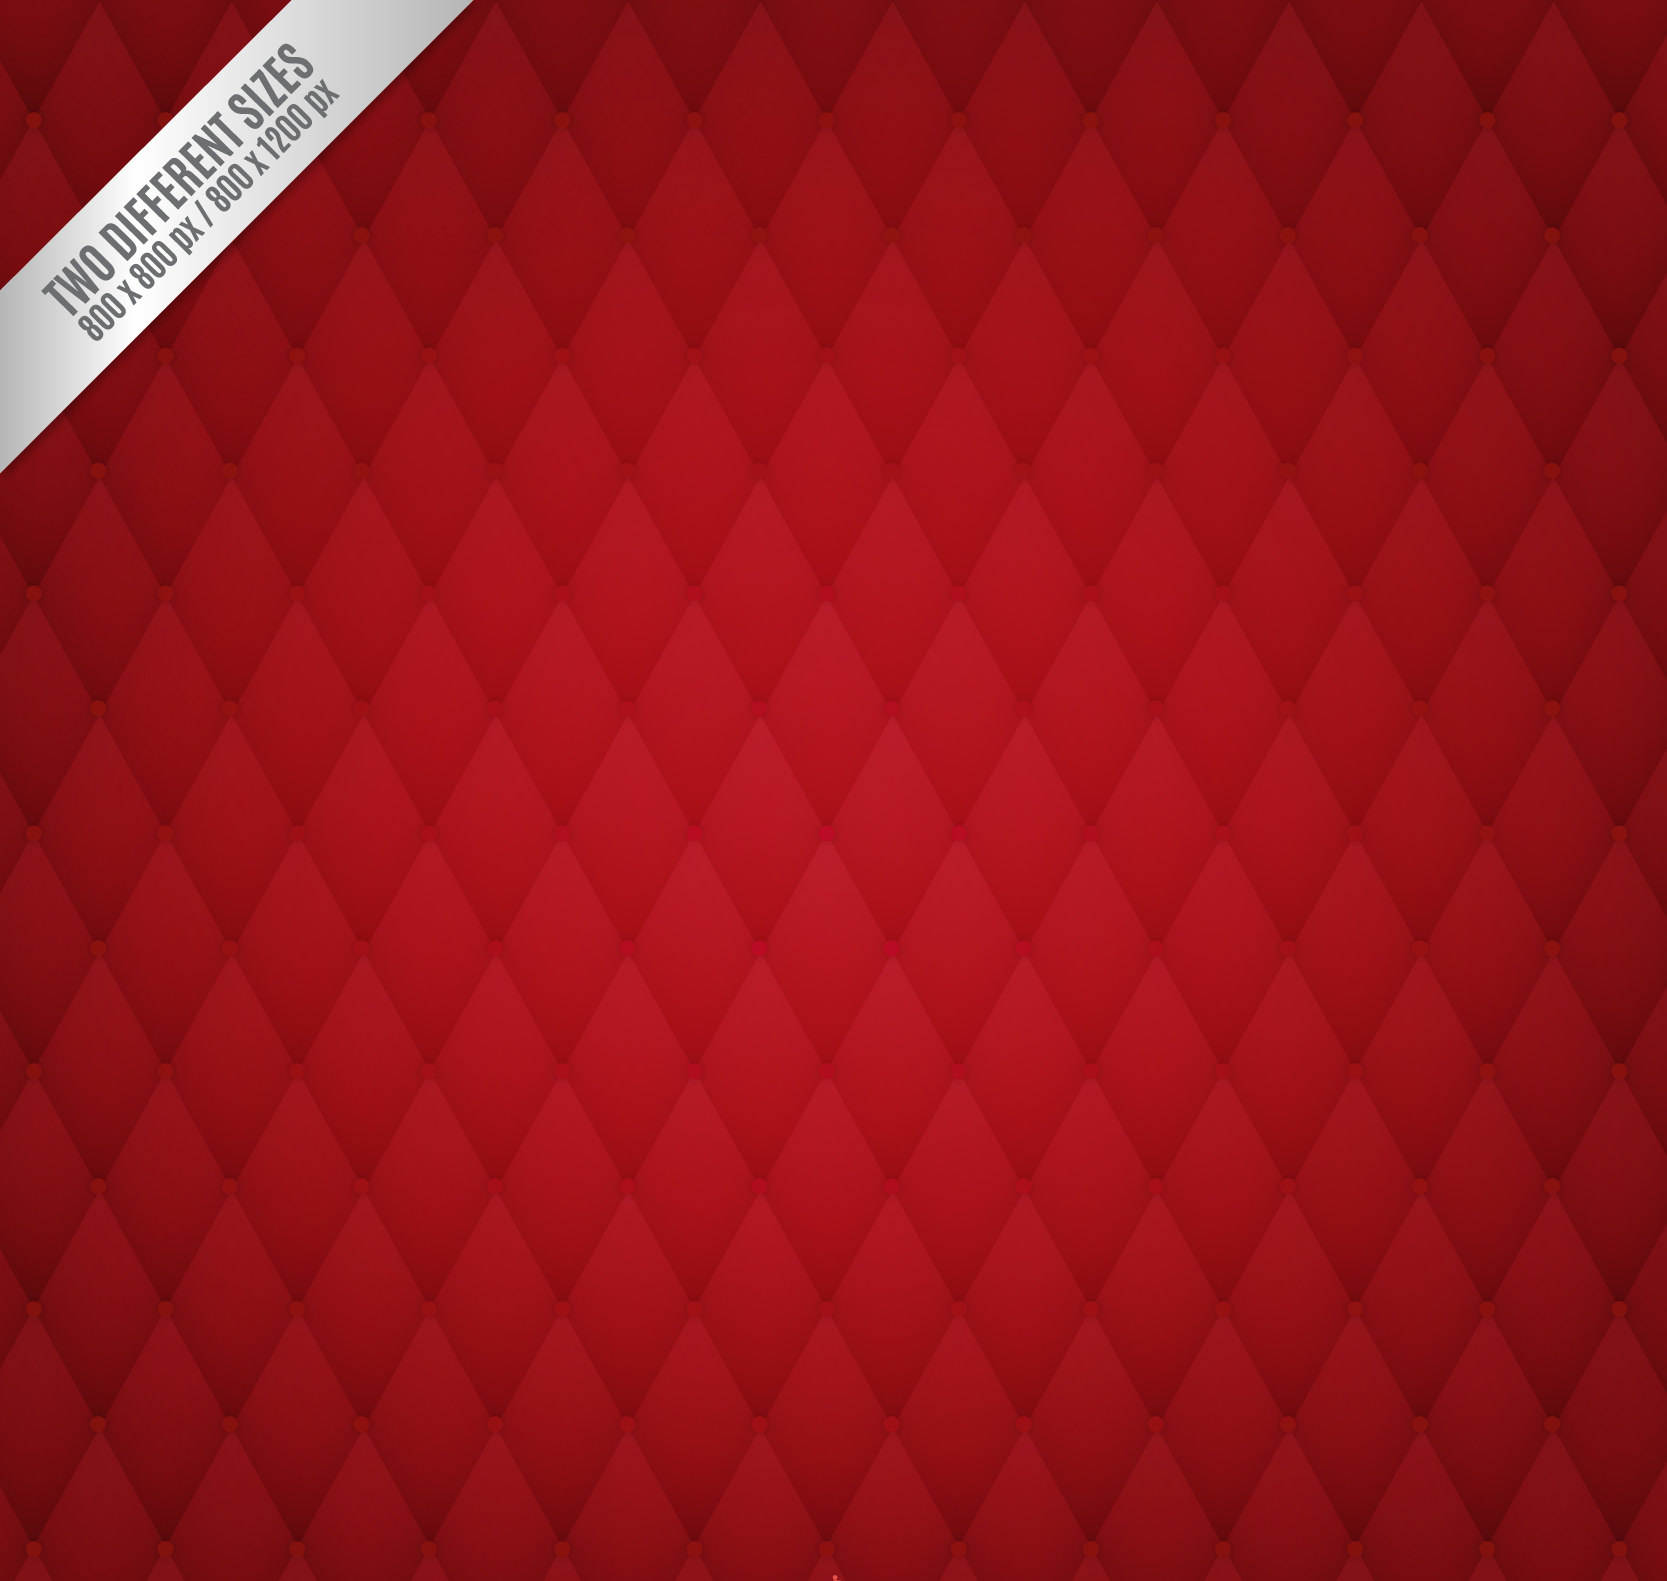 Upholstery Background in Red Color